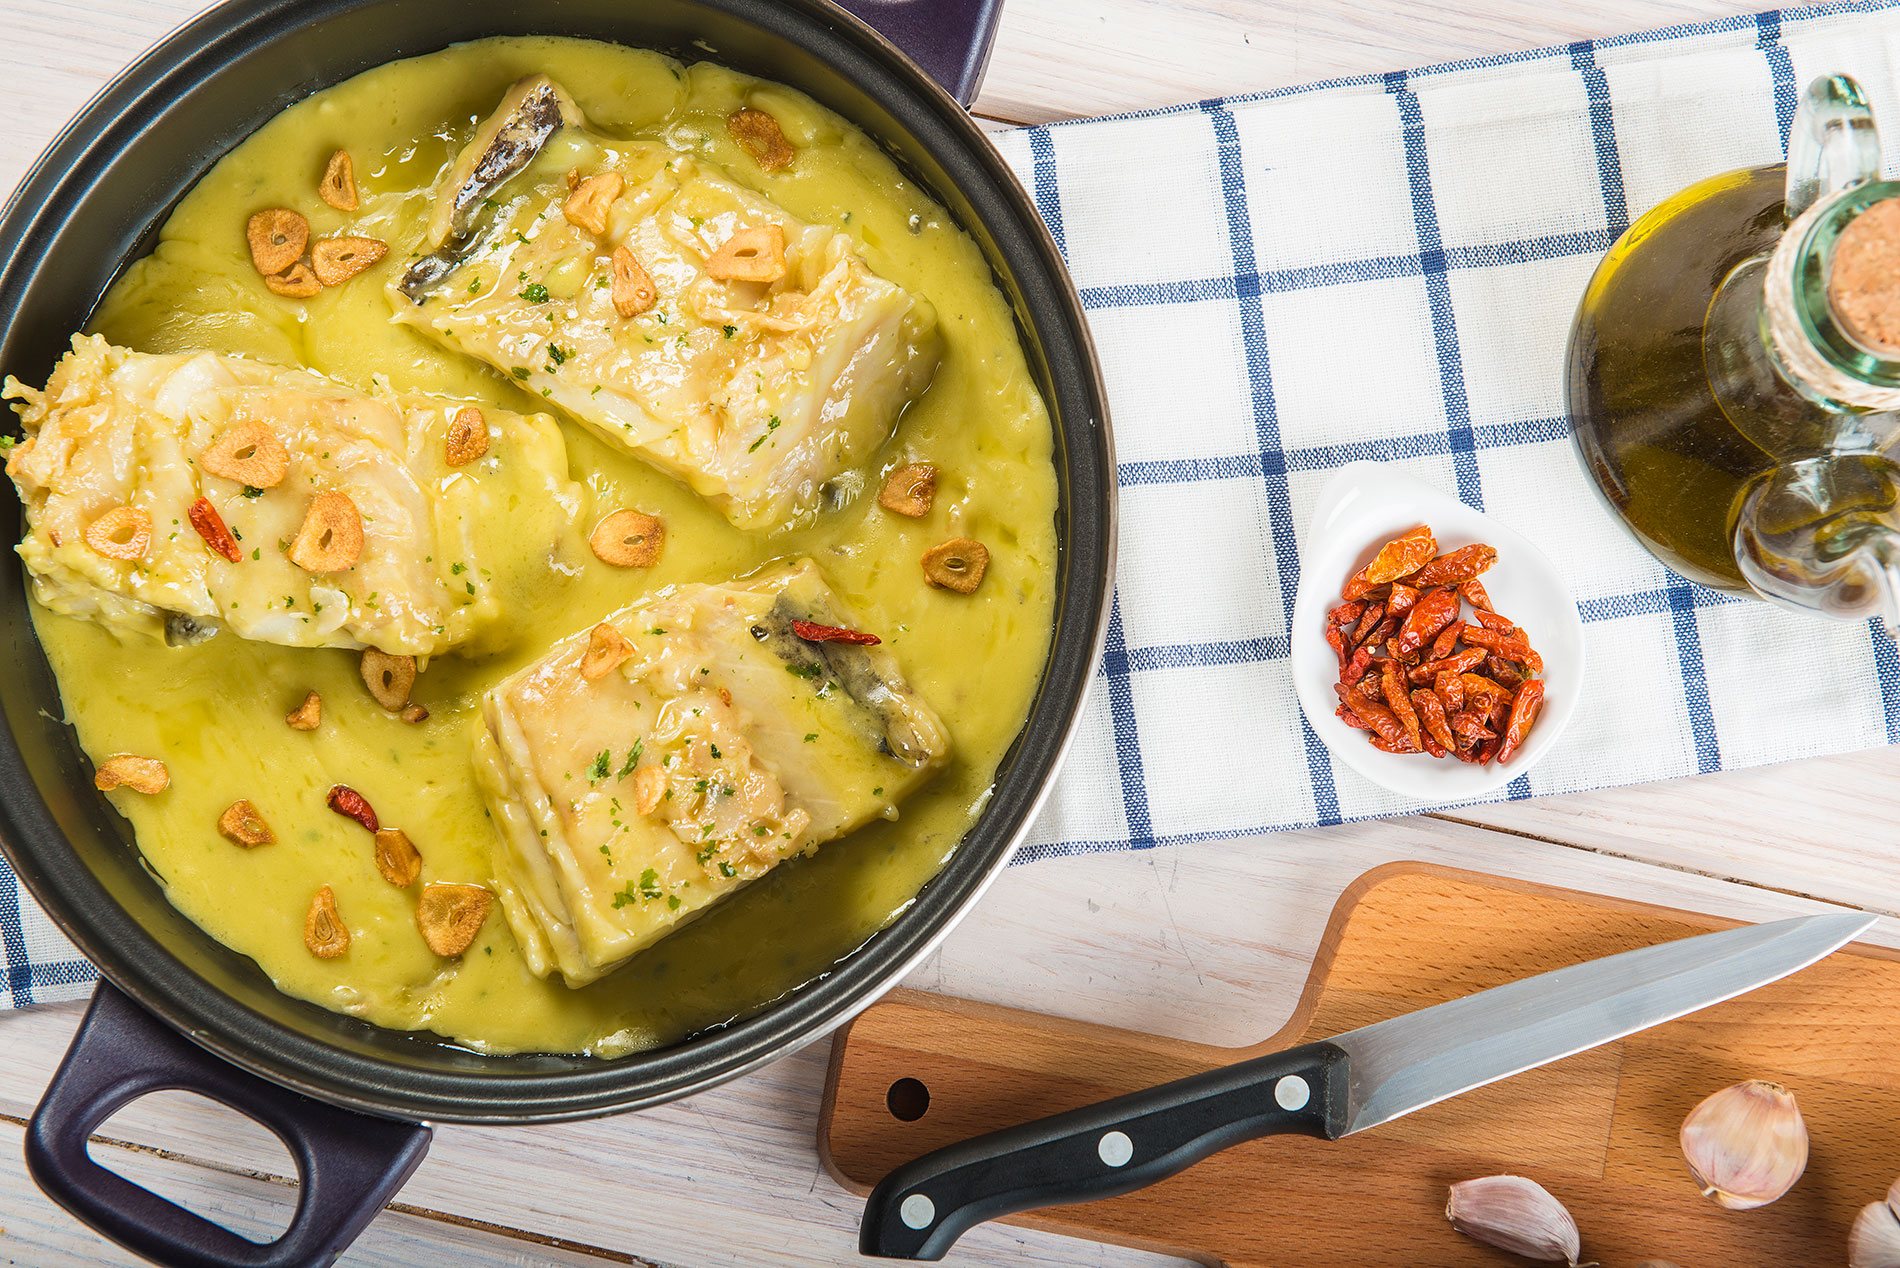 Bacalao al pil-pil, traditional Easter dish in Spain and Basque Country